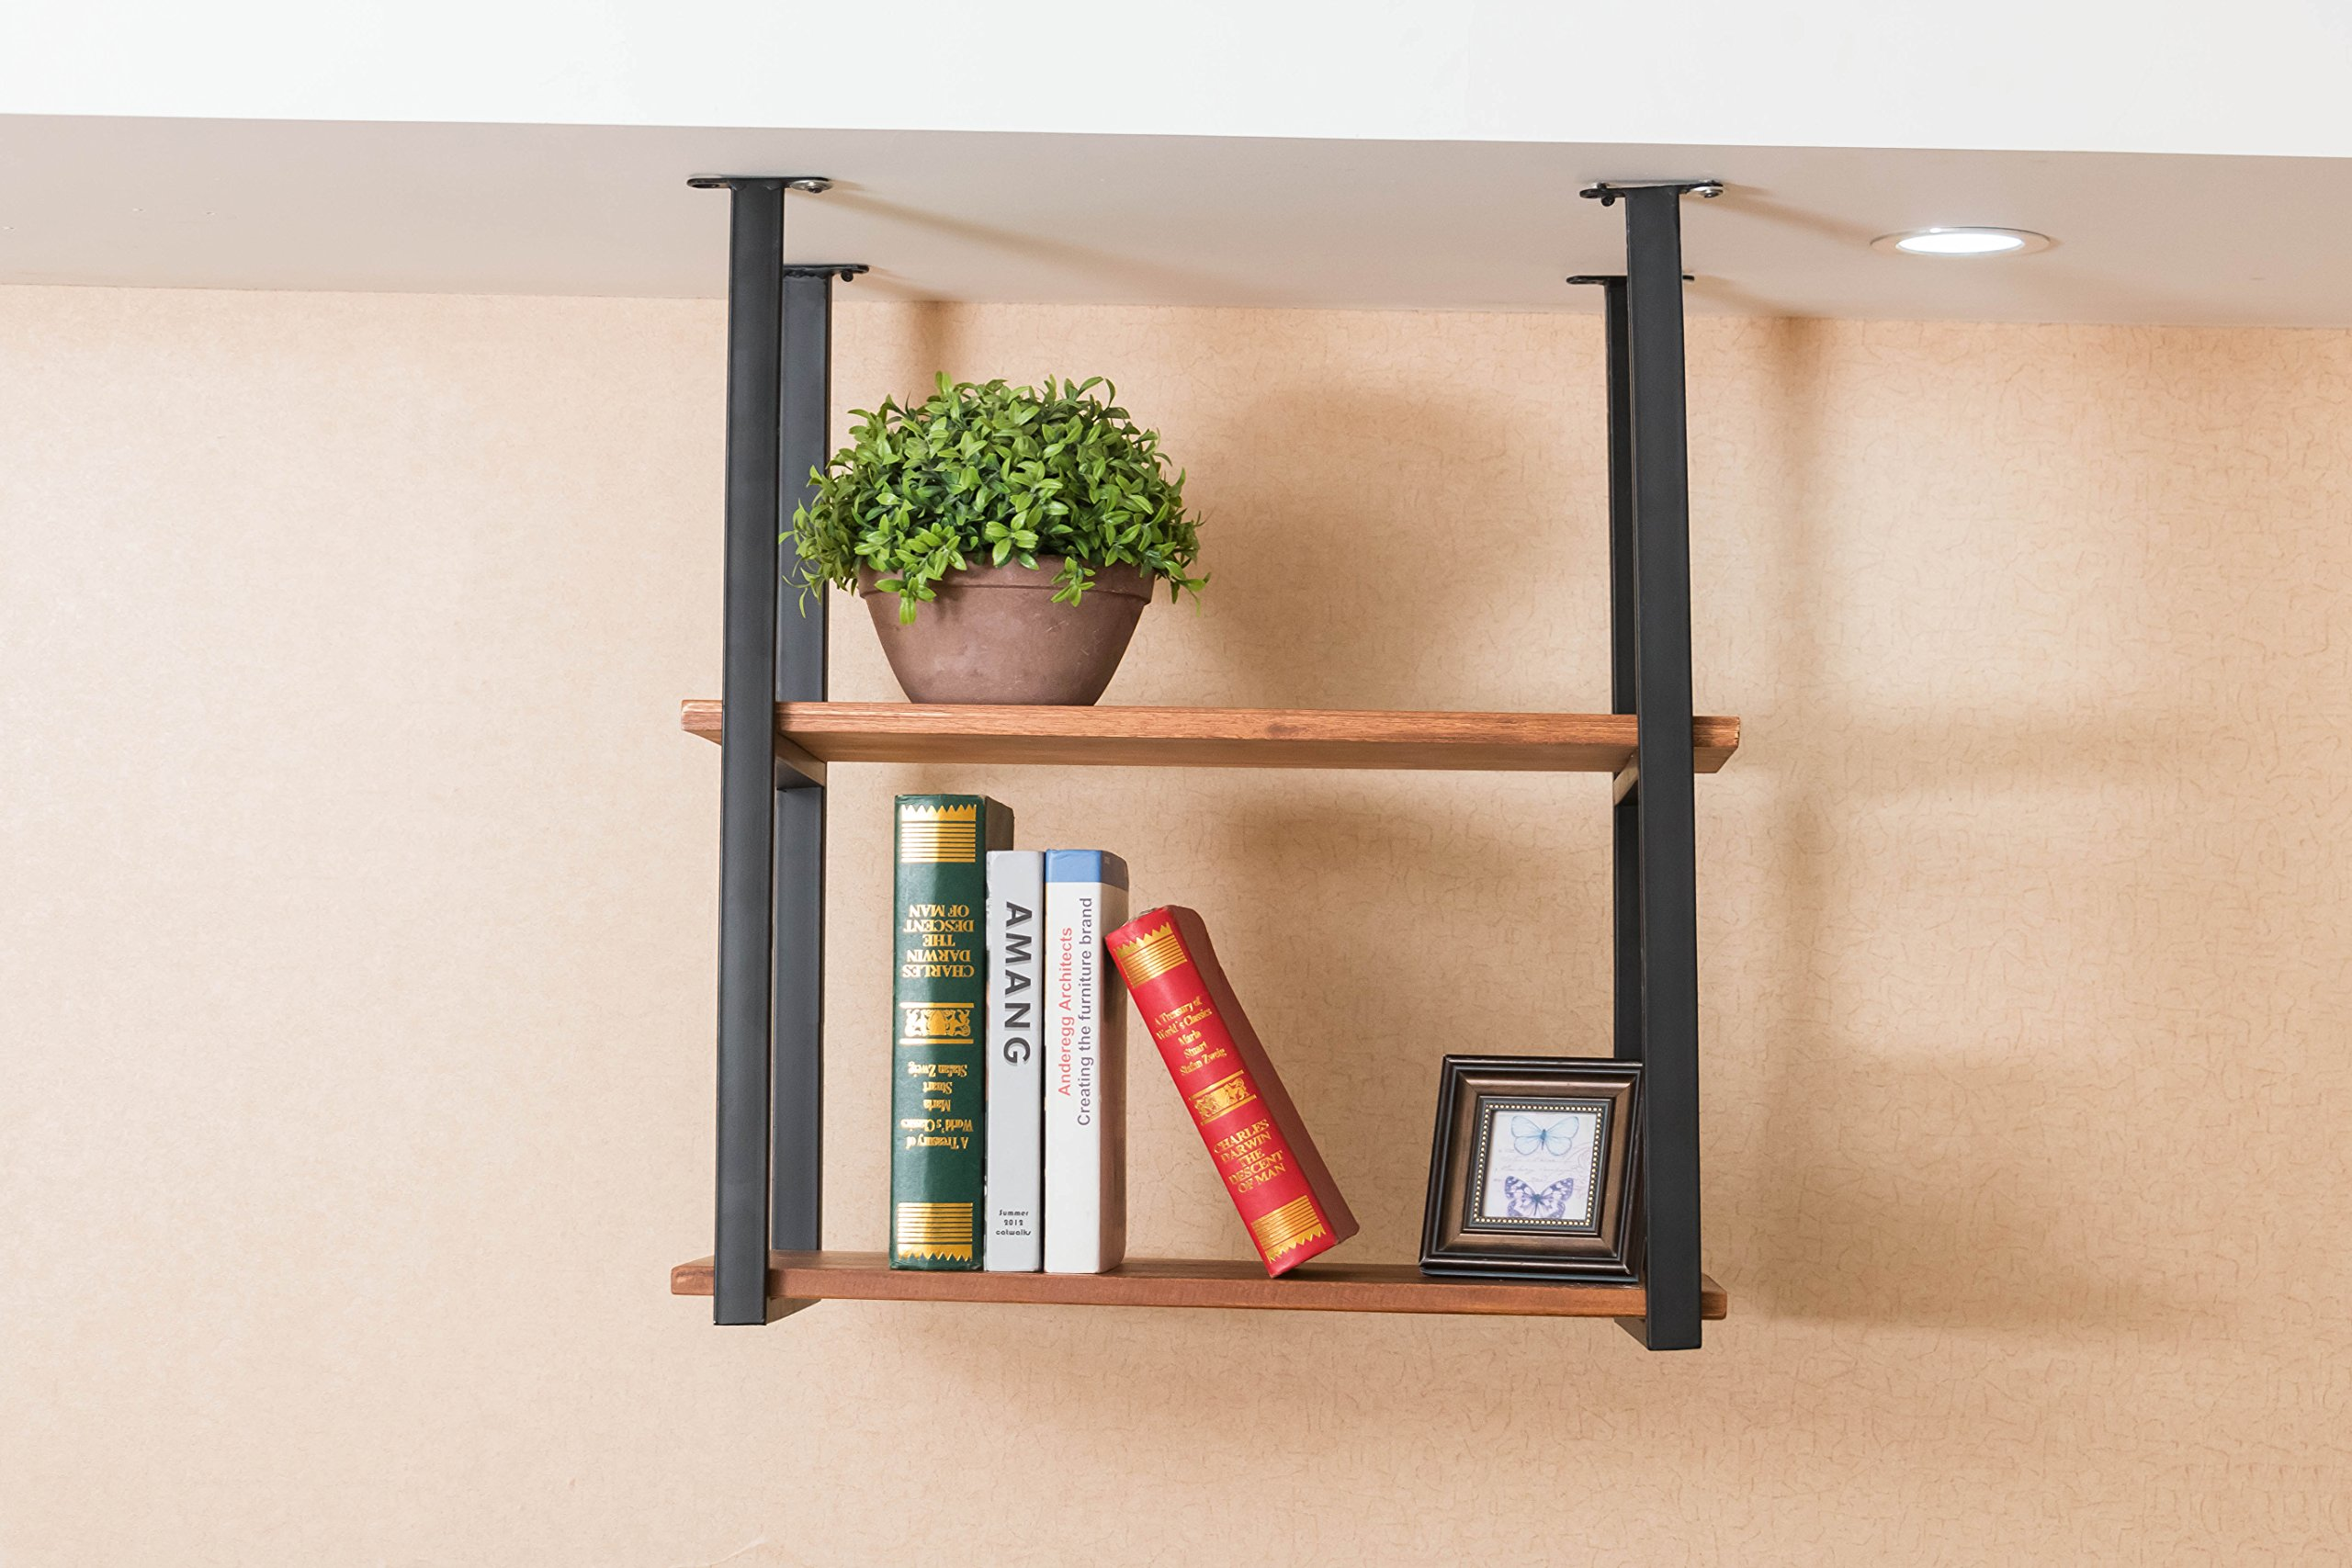 Rustic Kitchen Wood Wall Shelf,Wall Mounted Hanging Liquor Display Bar Shelves Wine Bottle Holder Rack Multi Use for Home Kicthen Coffee Storage & Organization Product (2-Layer L23.6'' D12''xH24.5'') by WGX